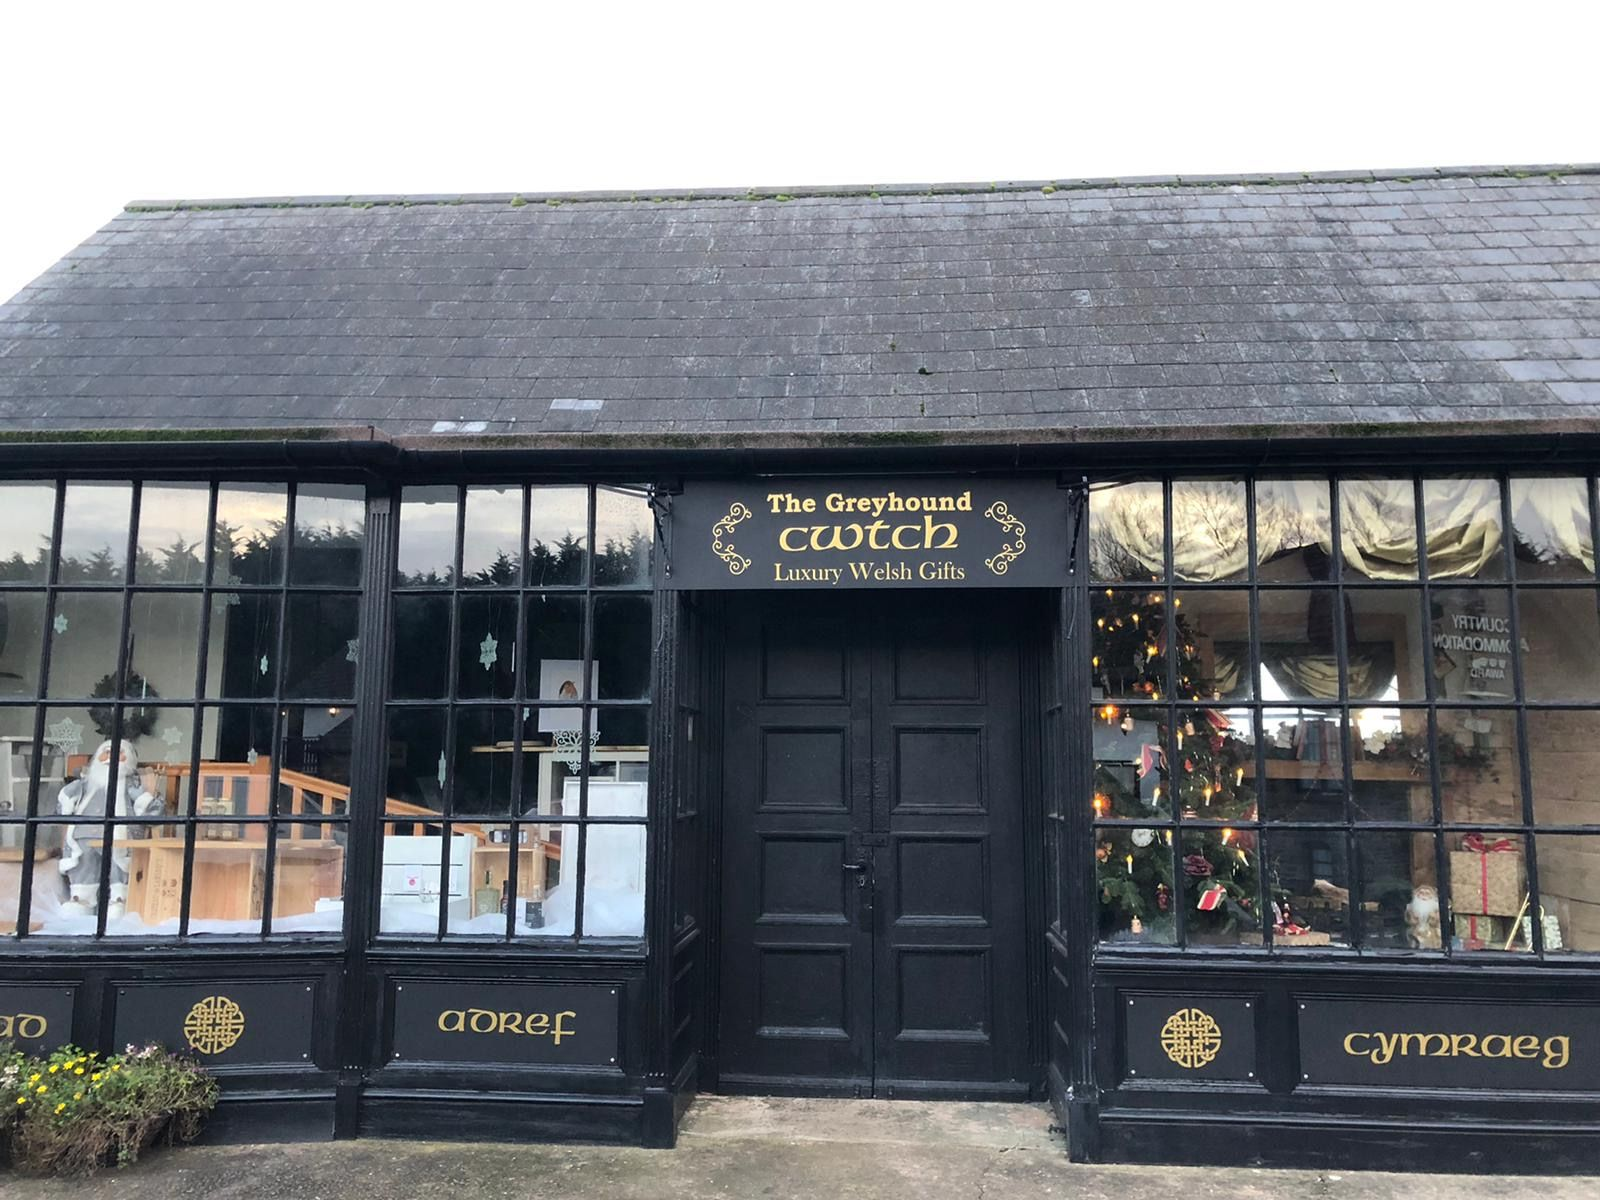 The Cwtch luxury Welsh gift shop front